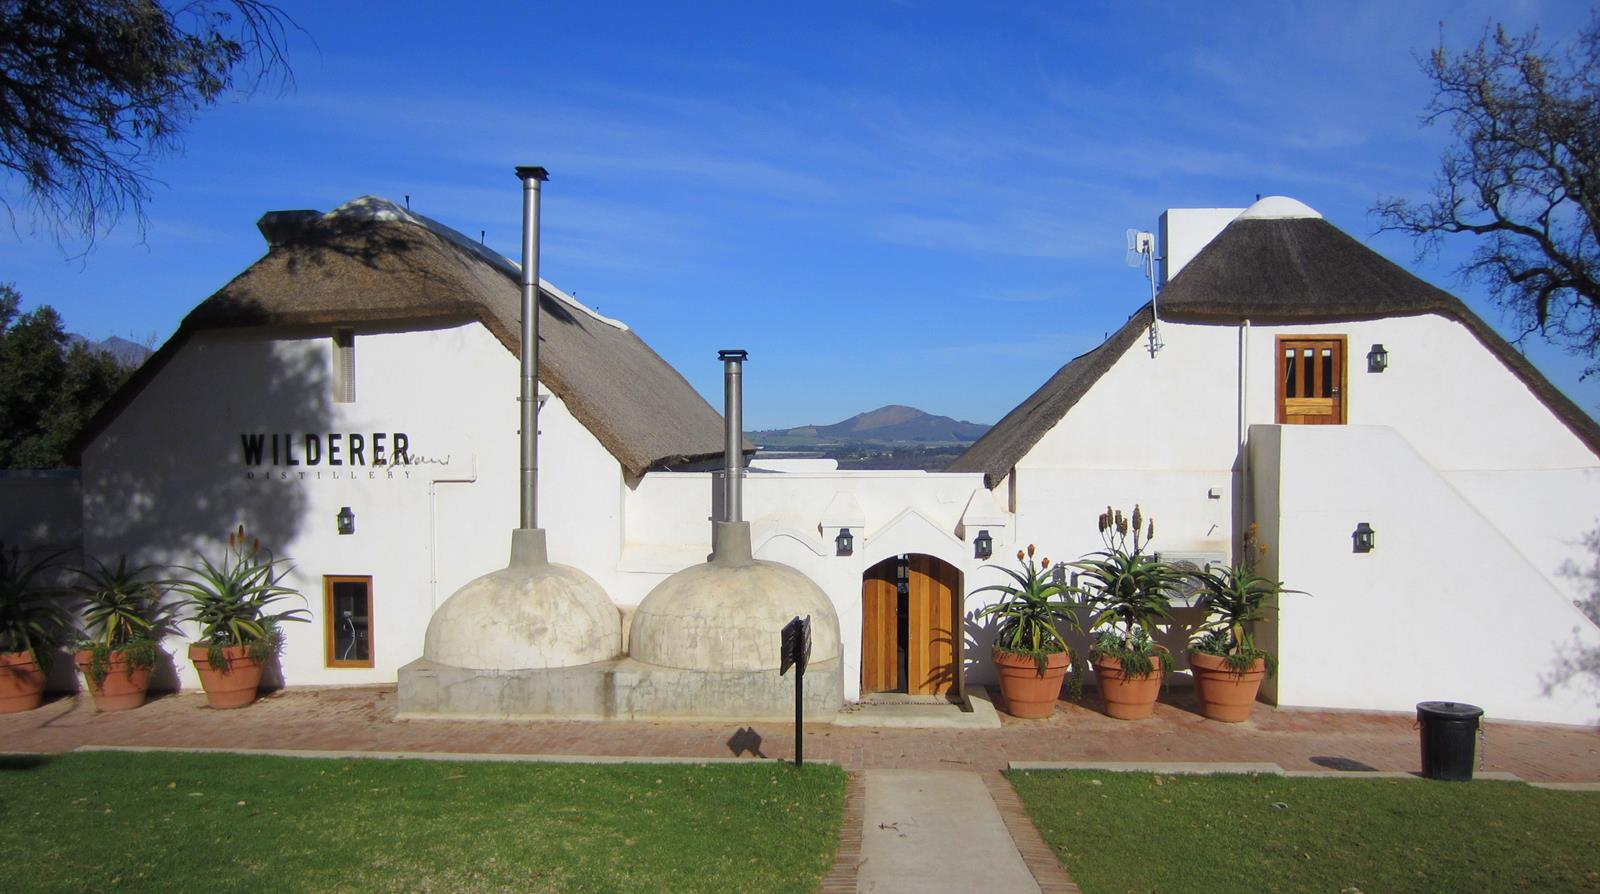 The Wilderer Distillery.